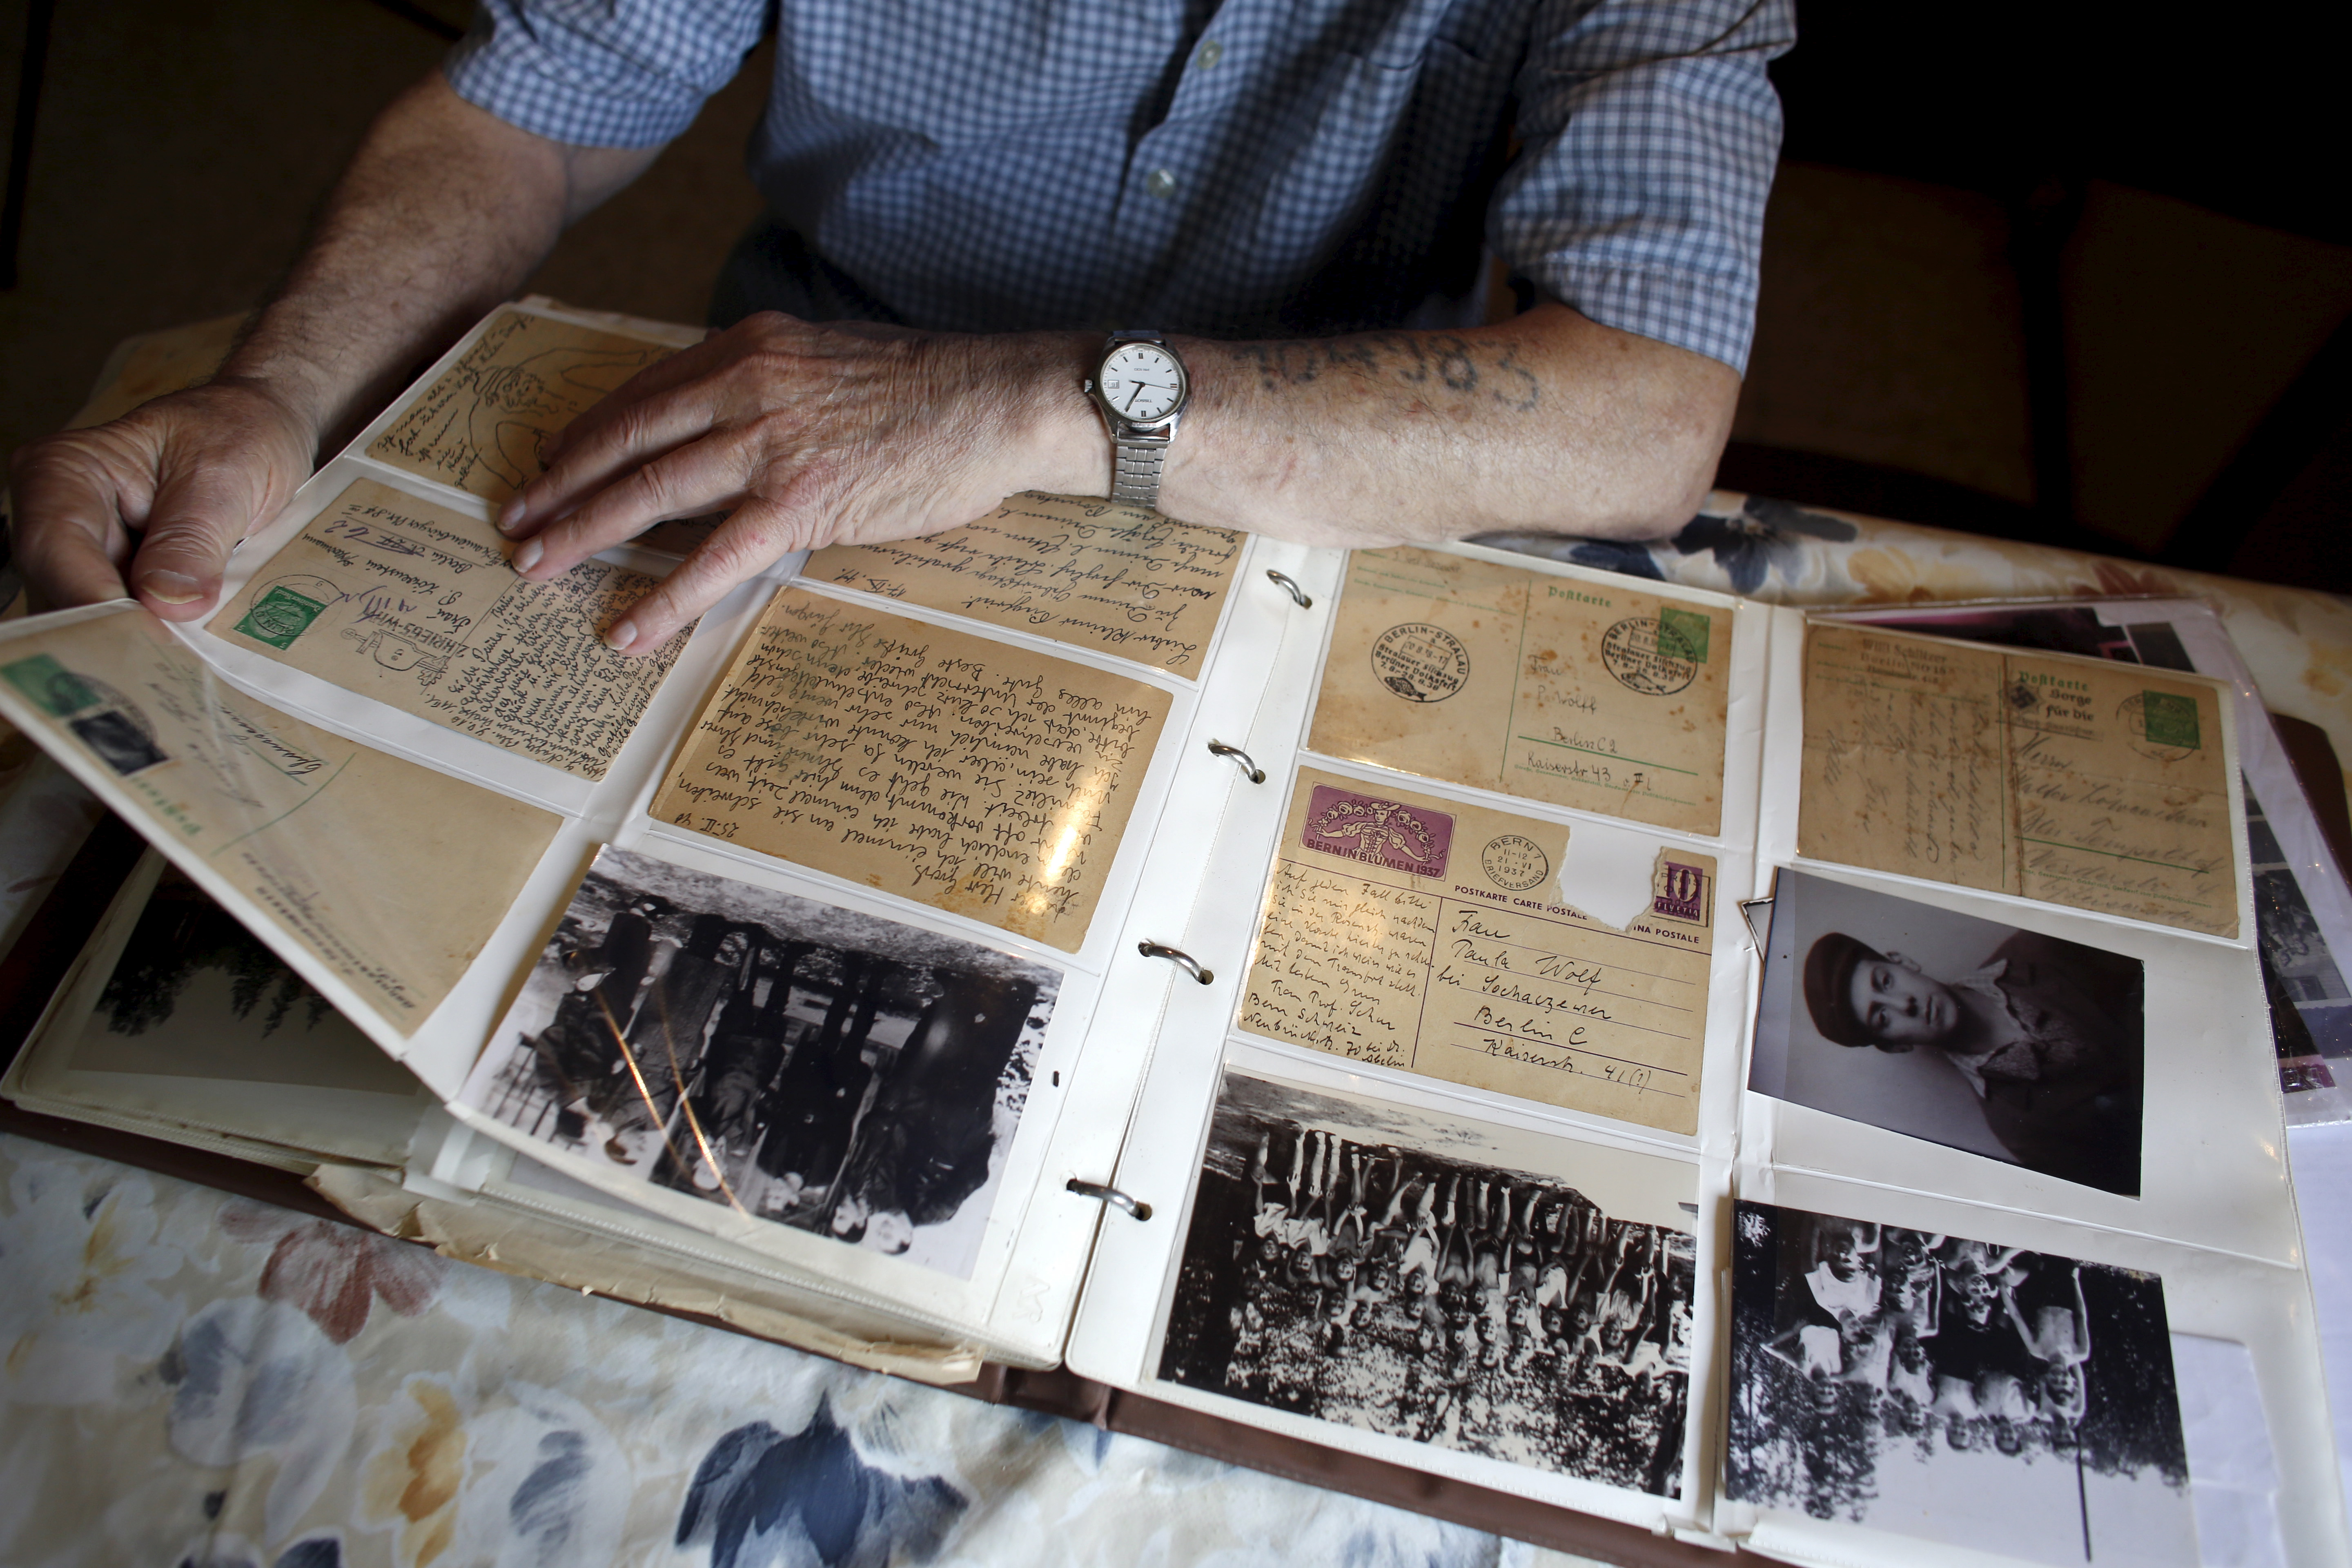 Holocaust survivor Israel Loewenstein, 91, looks at a photo album at his home in Yad Hana, Israel on April 6, 2016.